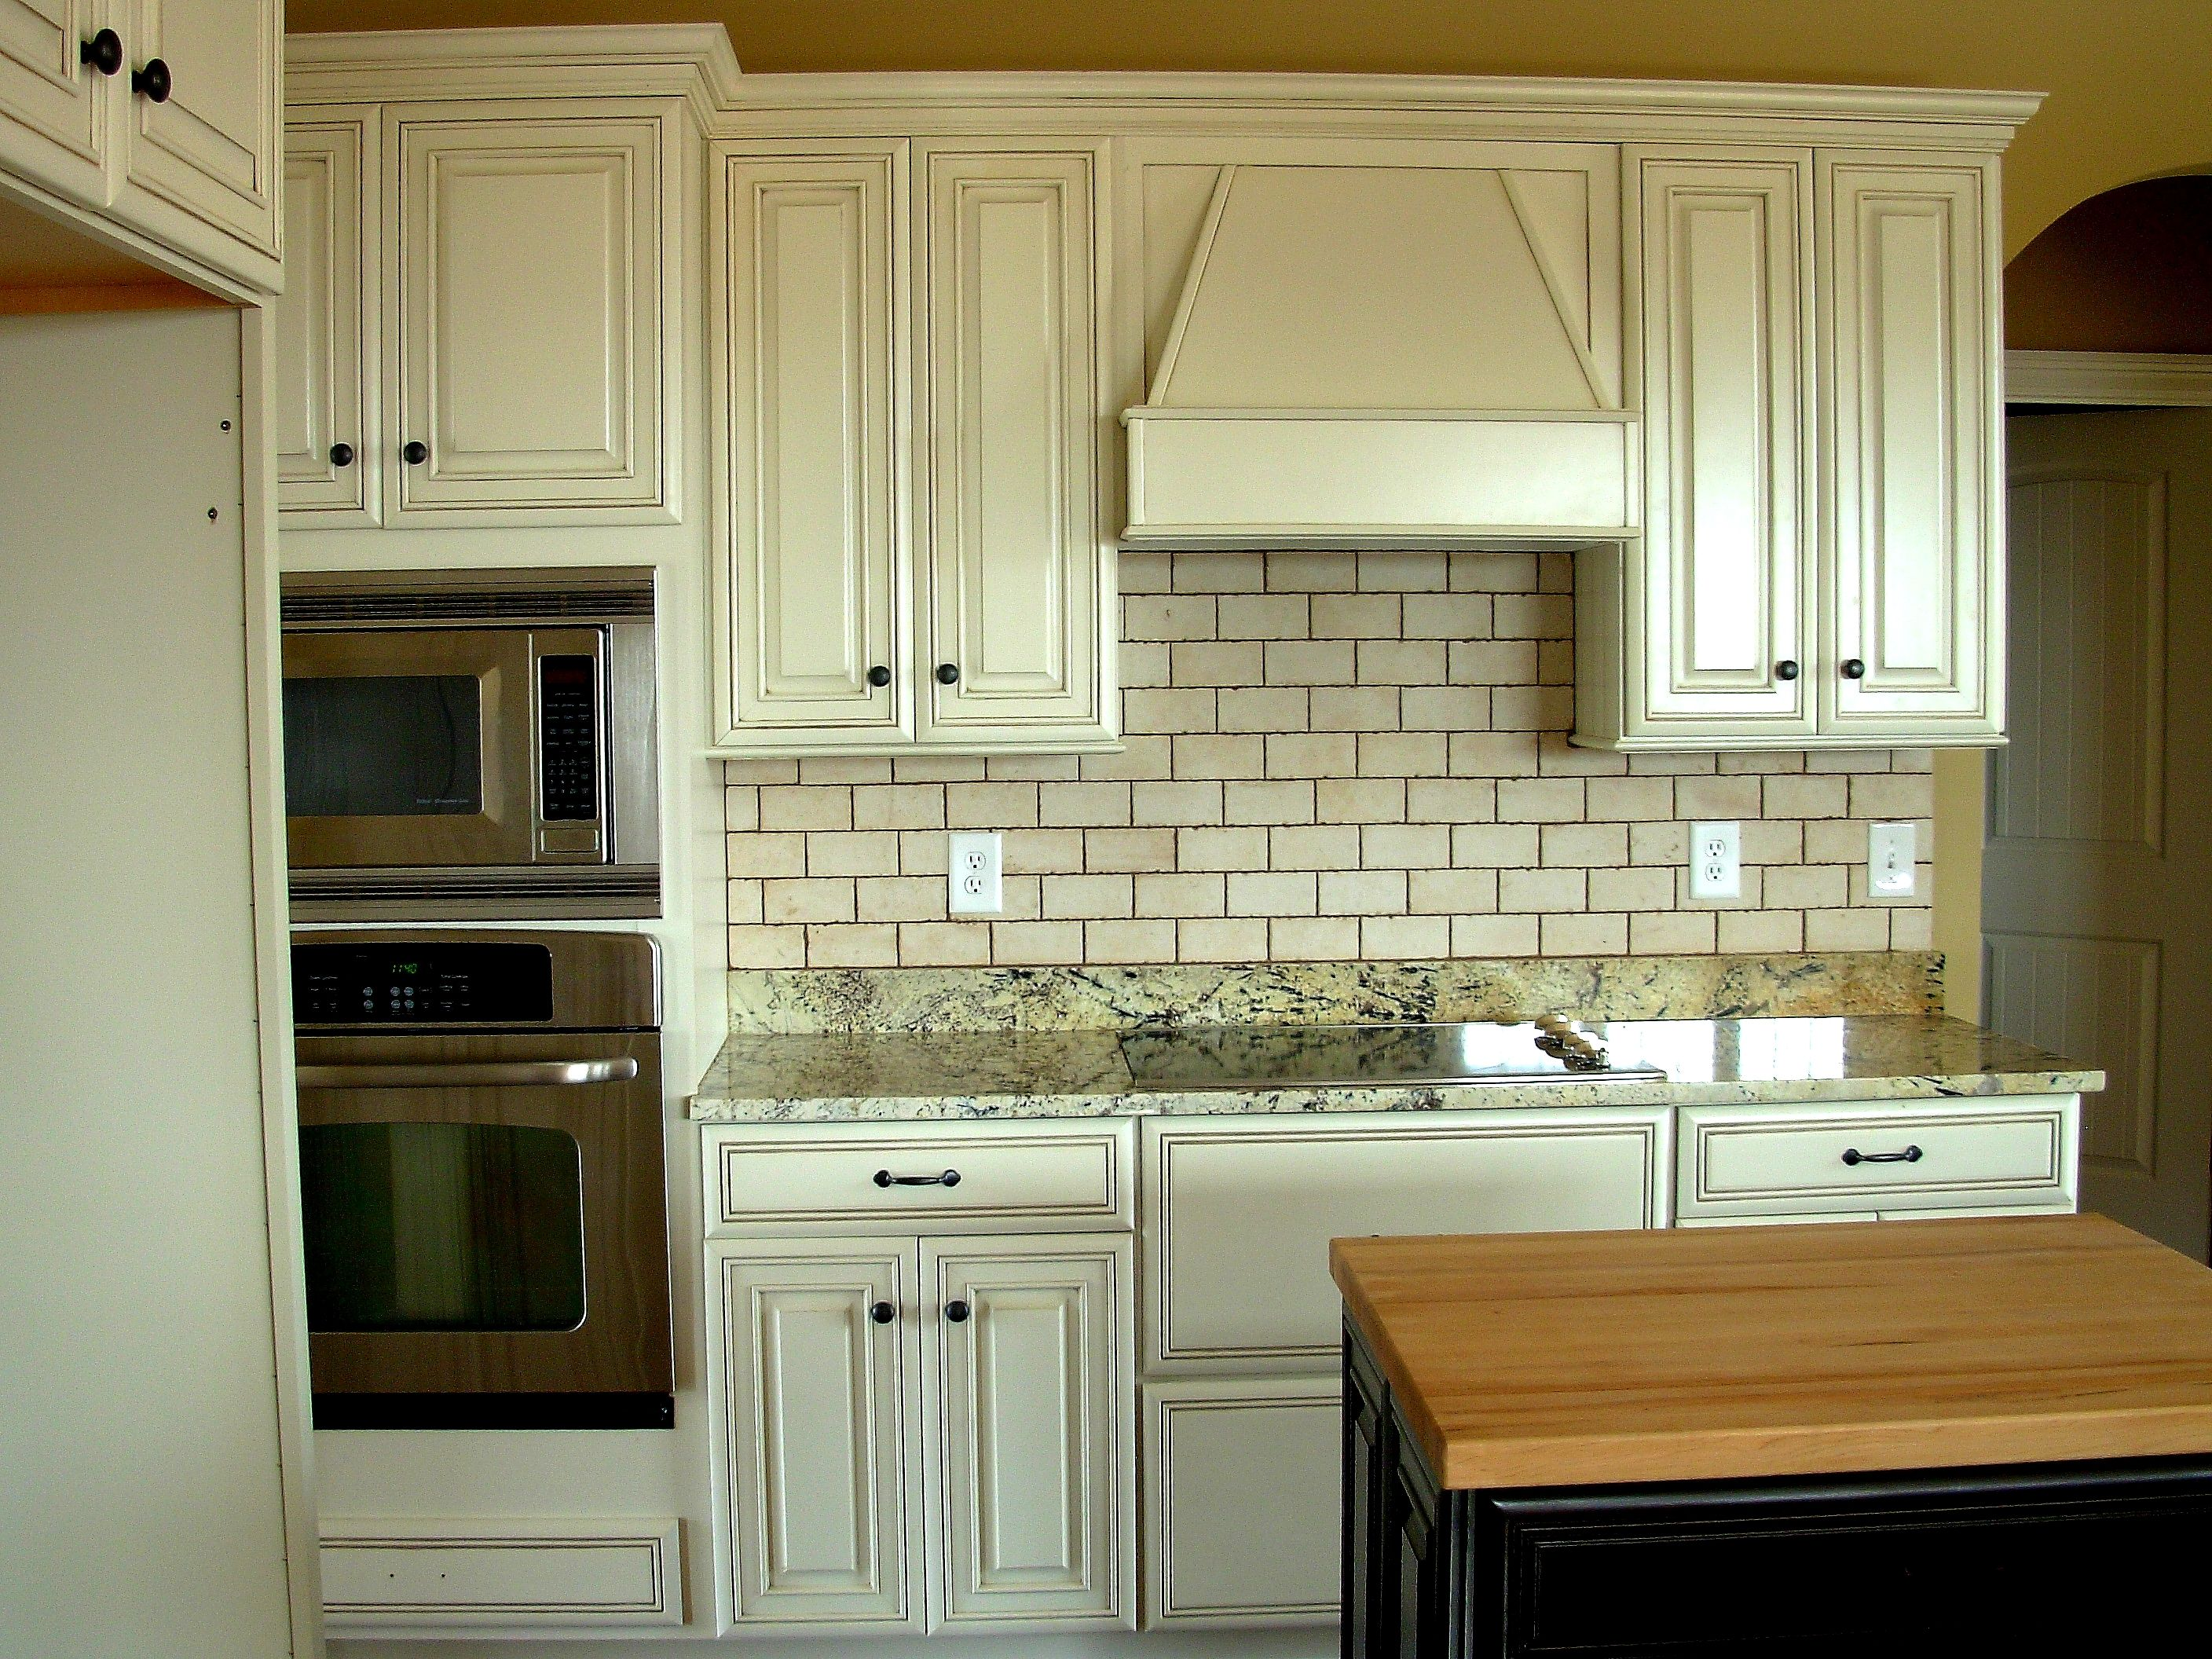 Subway Tile Backsplash, Luxe Homes And Design, White Glazed Cabinets,  Kemper Cabinets,